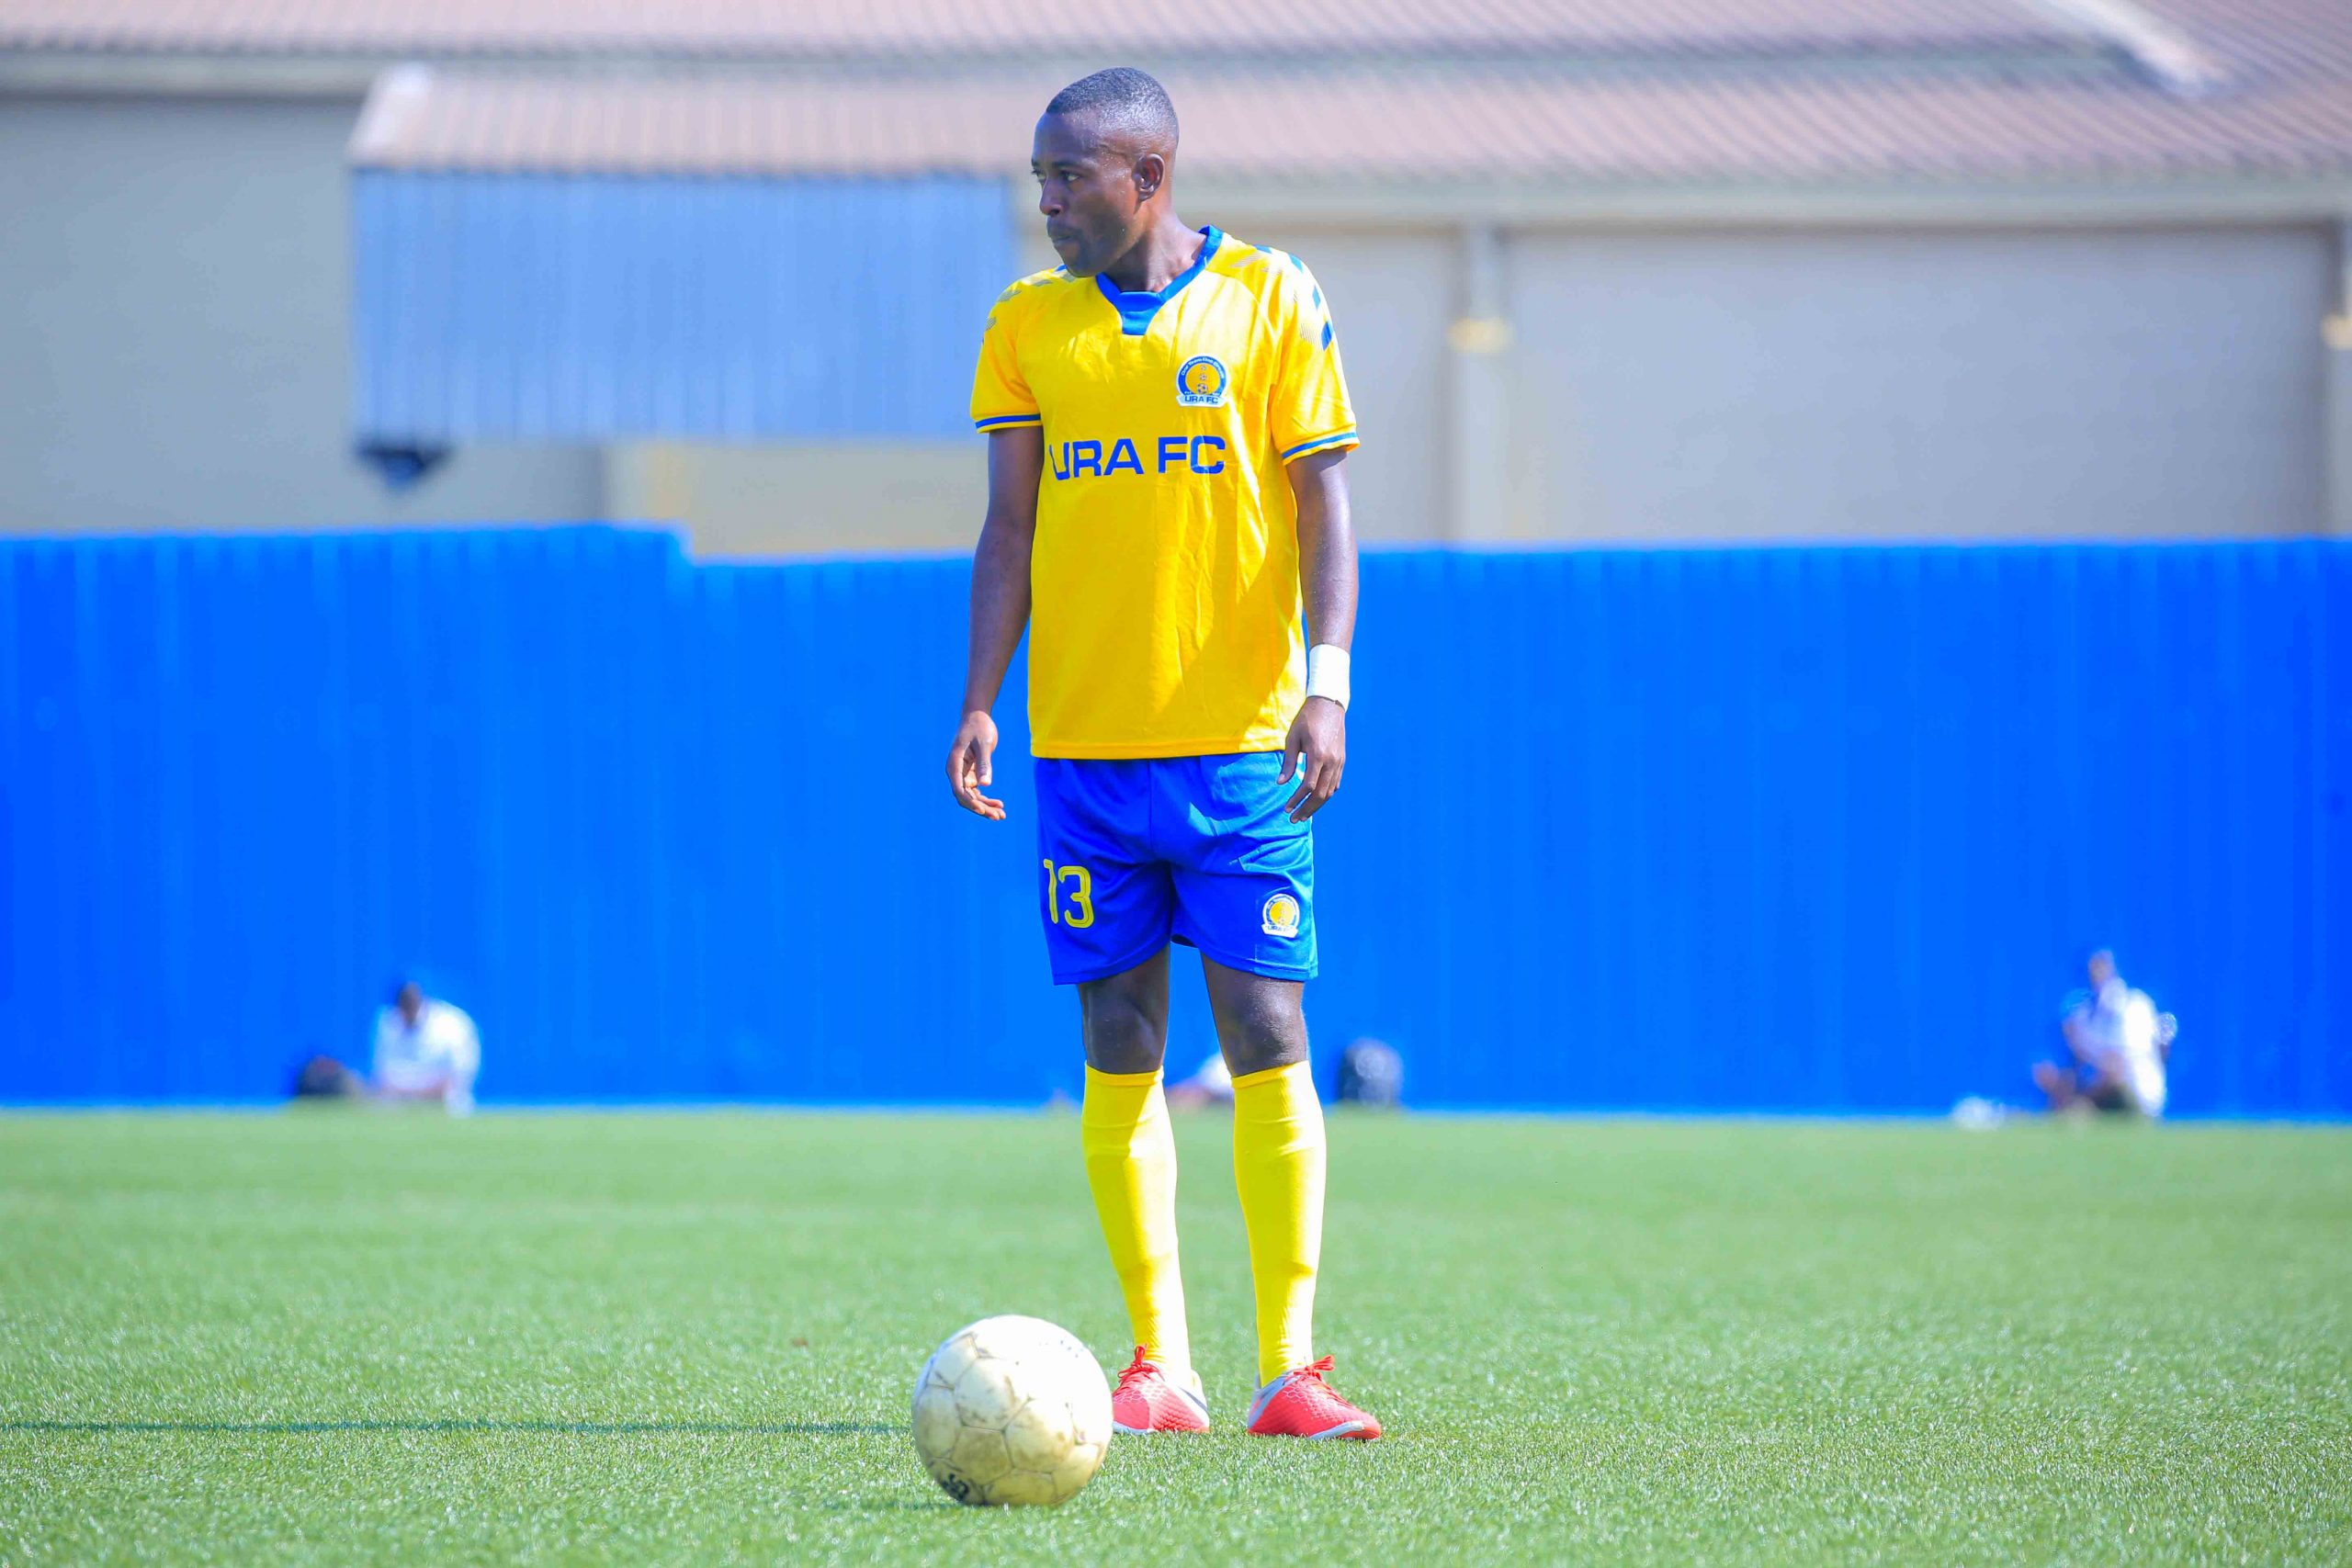 PREVIEW: URA V VIPERS